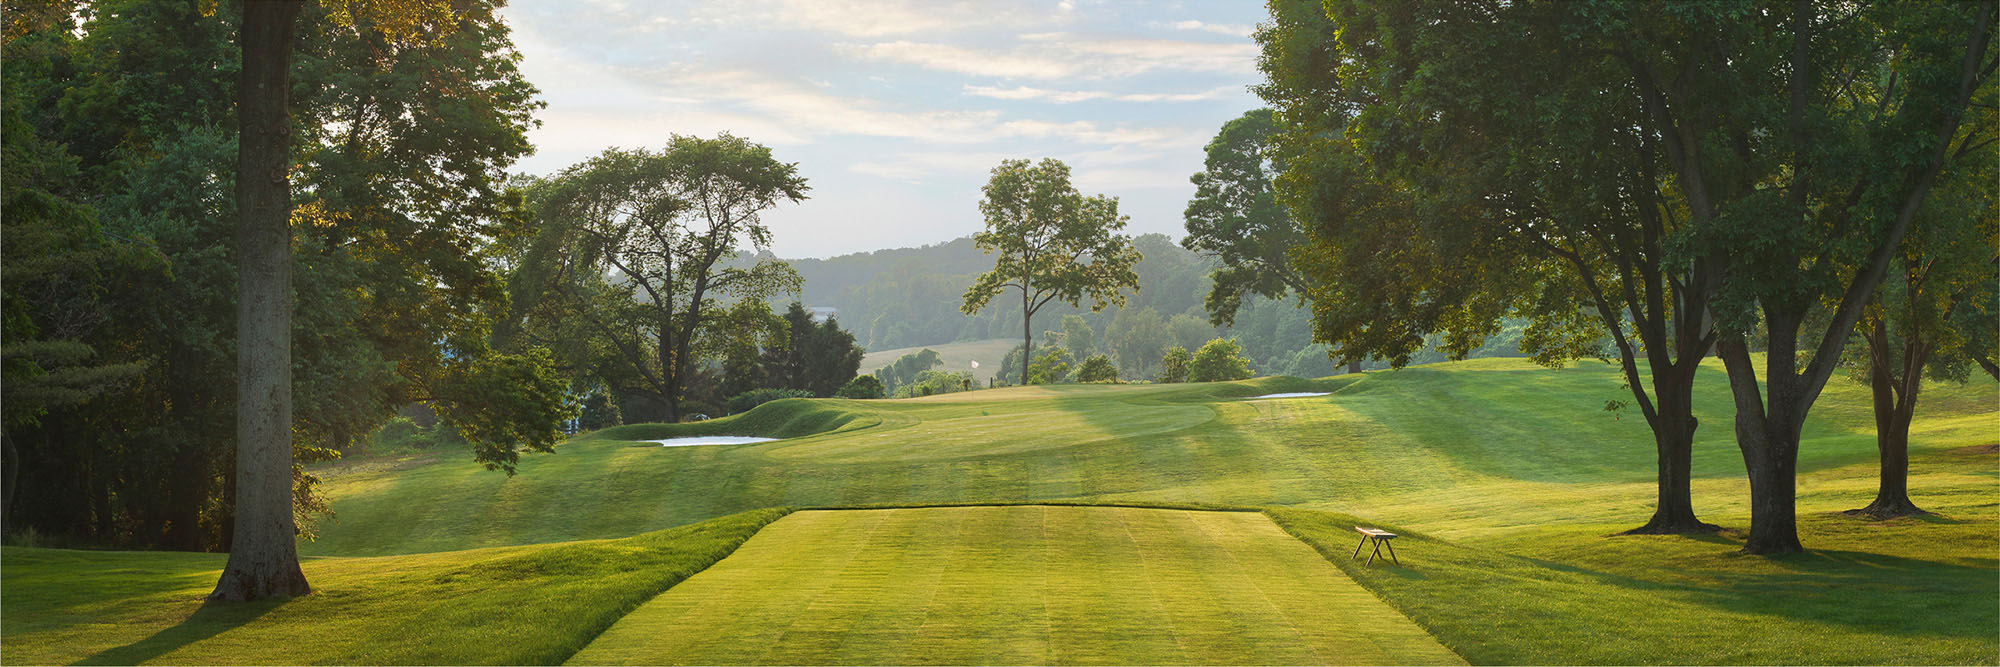 Golf Course Image - Hillendale Country Club No. 7